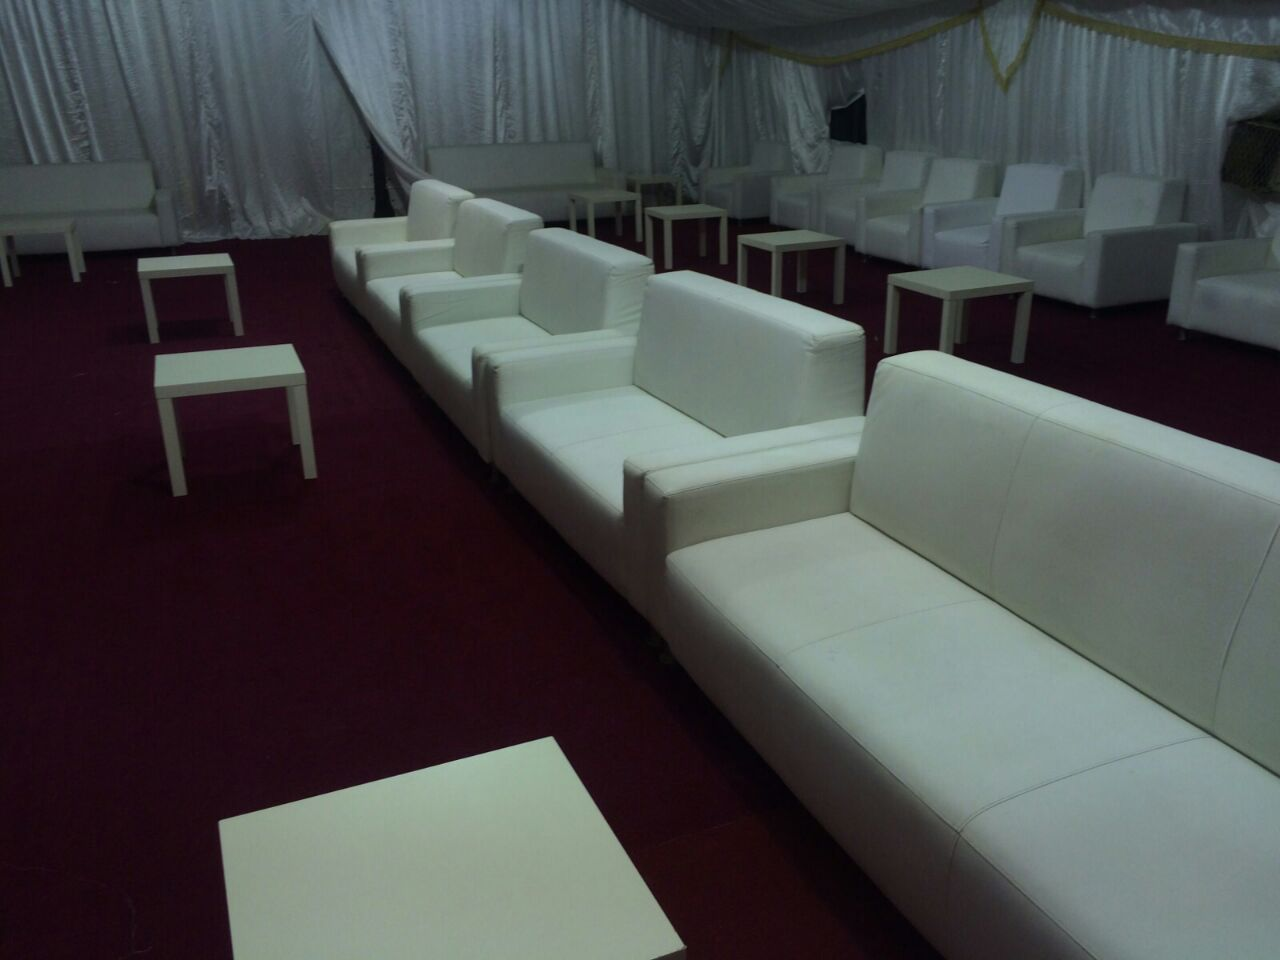 sofa covers online dubai beds orange county california vip rental img  party tents uae